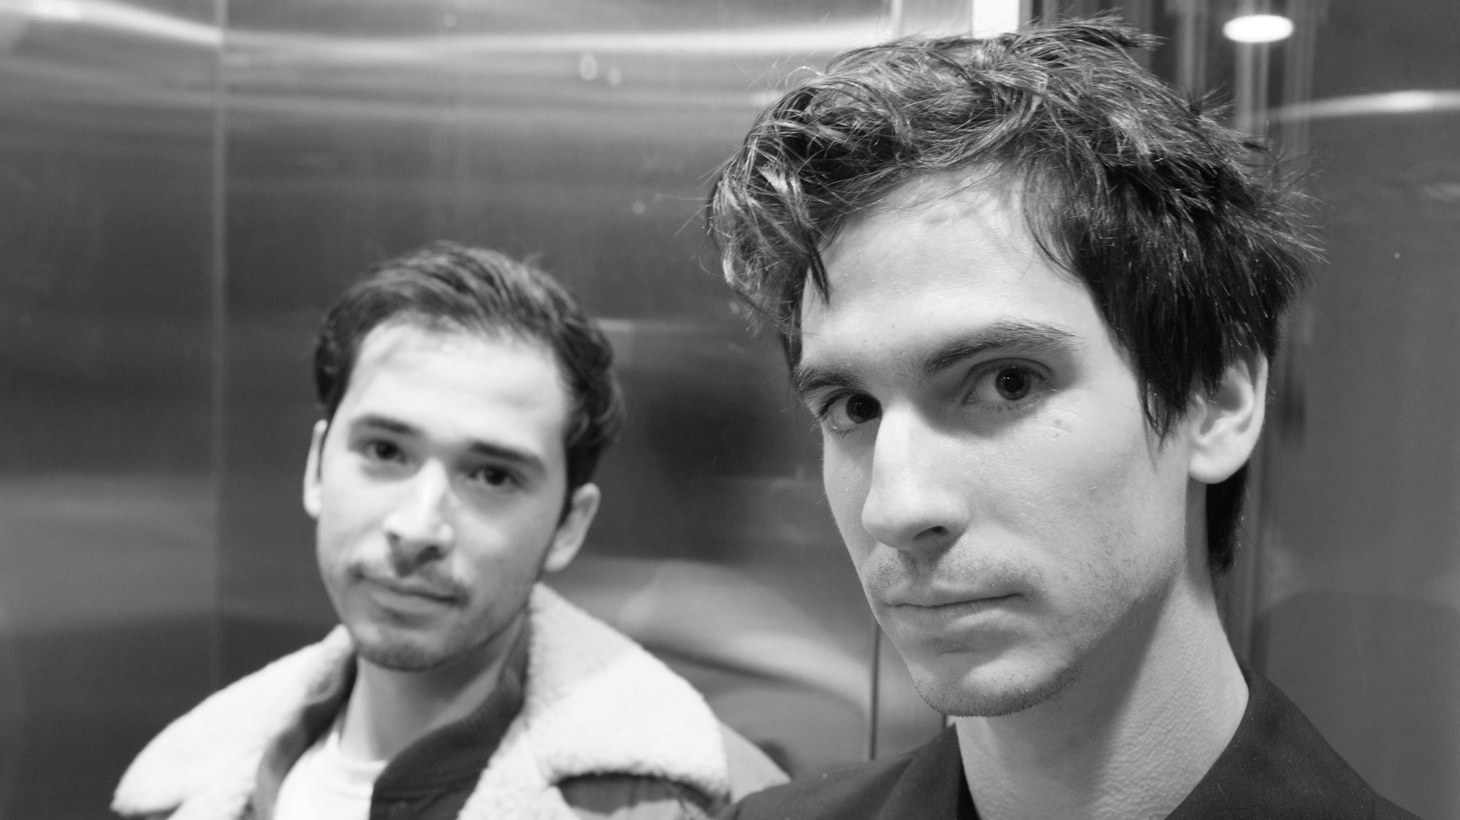 """Labelmates and pals, Hanni El Khatib & De Lux teamed up for """"Power Struggle,"""" an anthem that packs all their inspirations: disco, post-punk, and beyond as they share production and playing duties."""